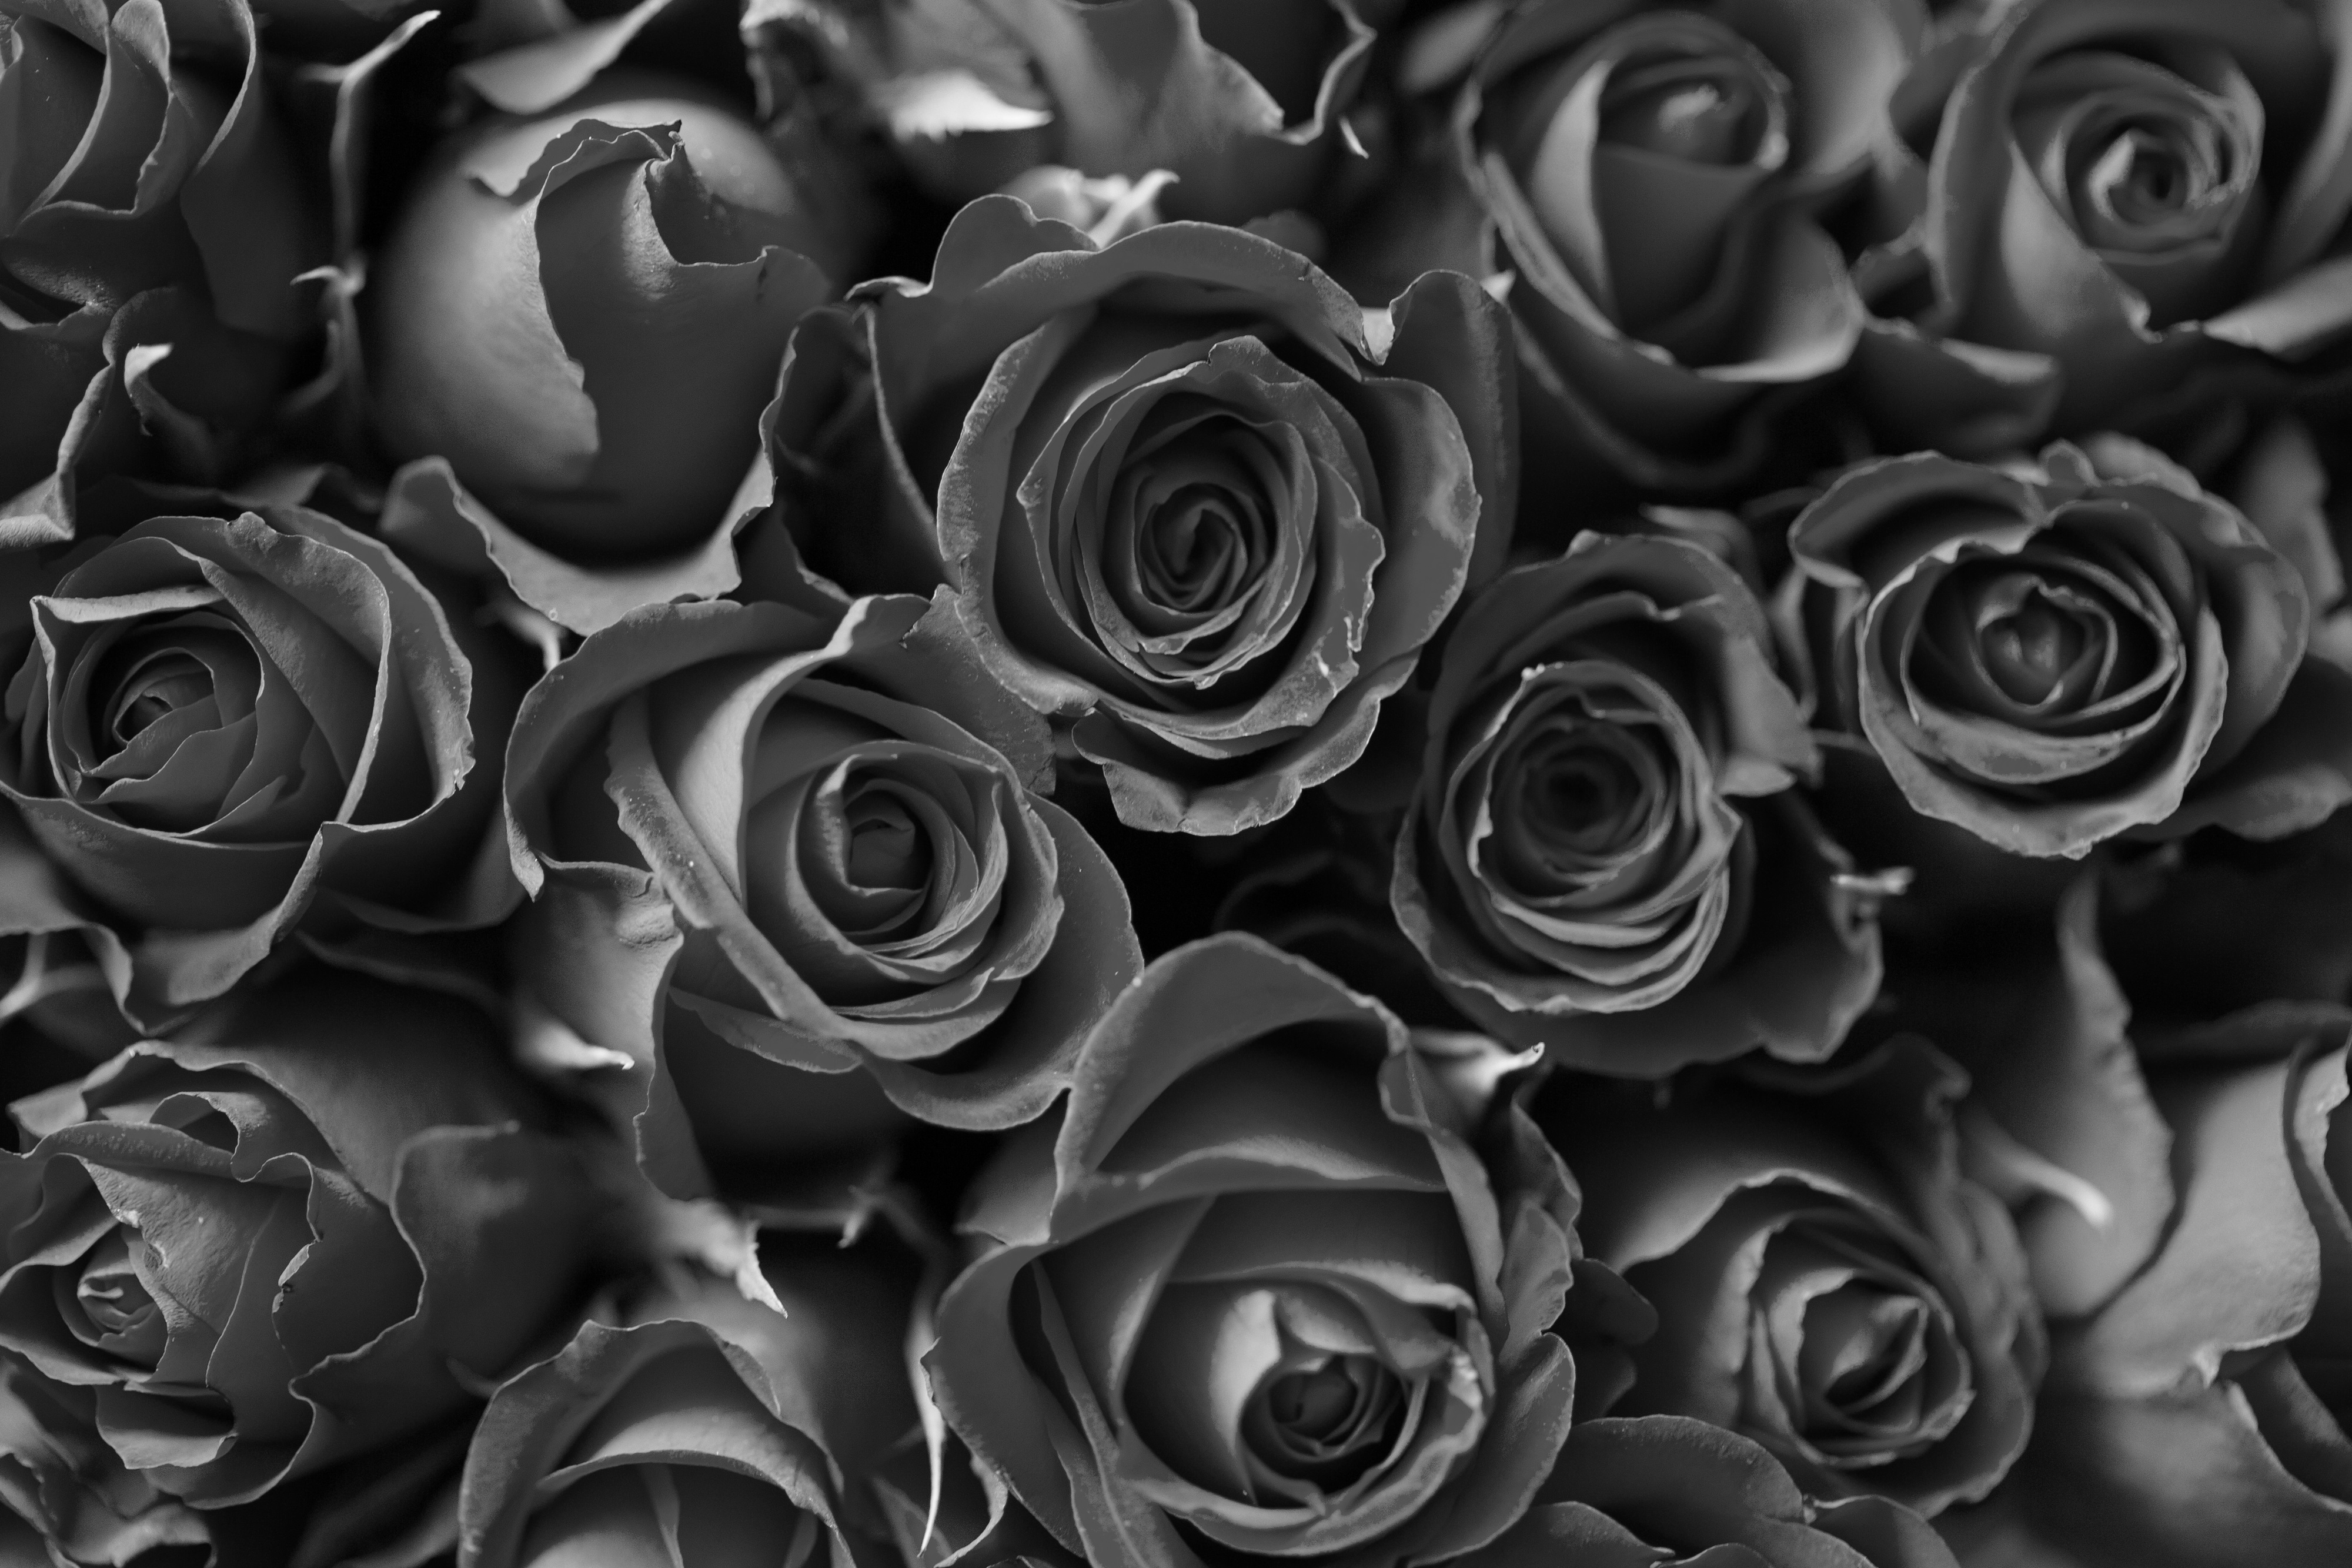 up-close bouquet of roses in black and white